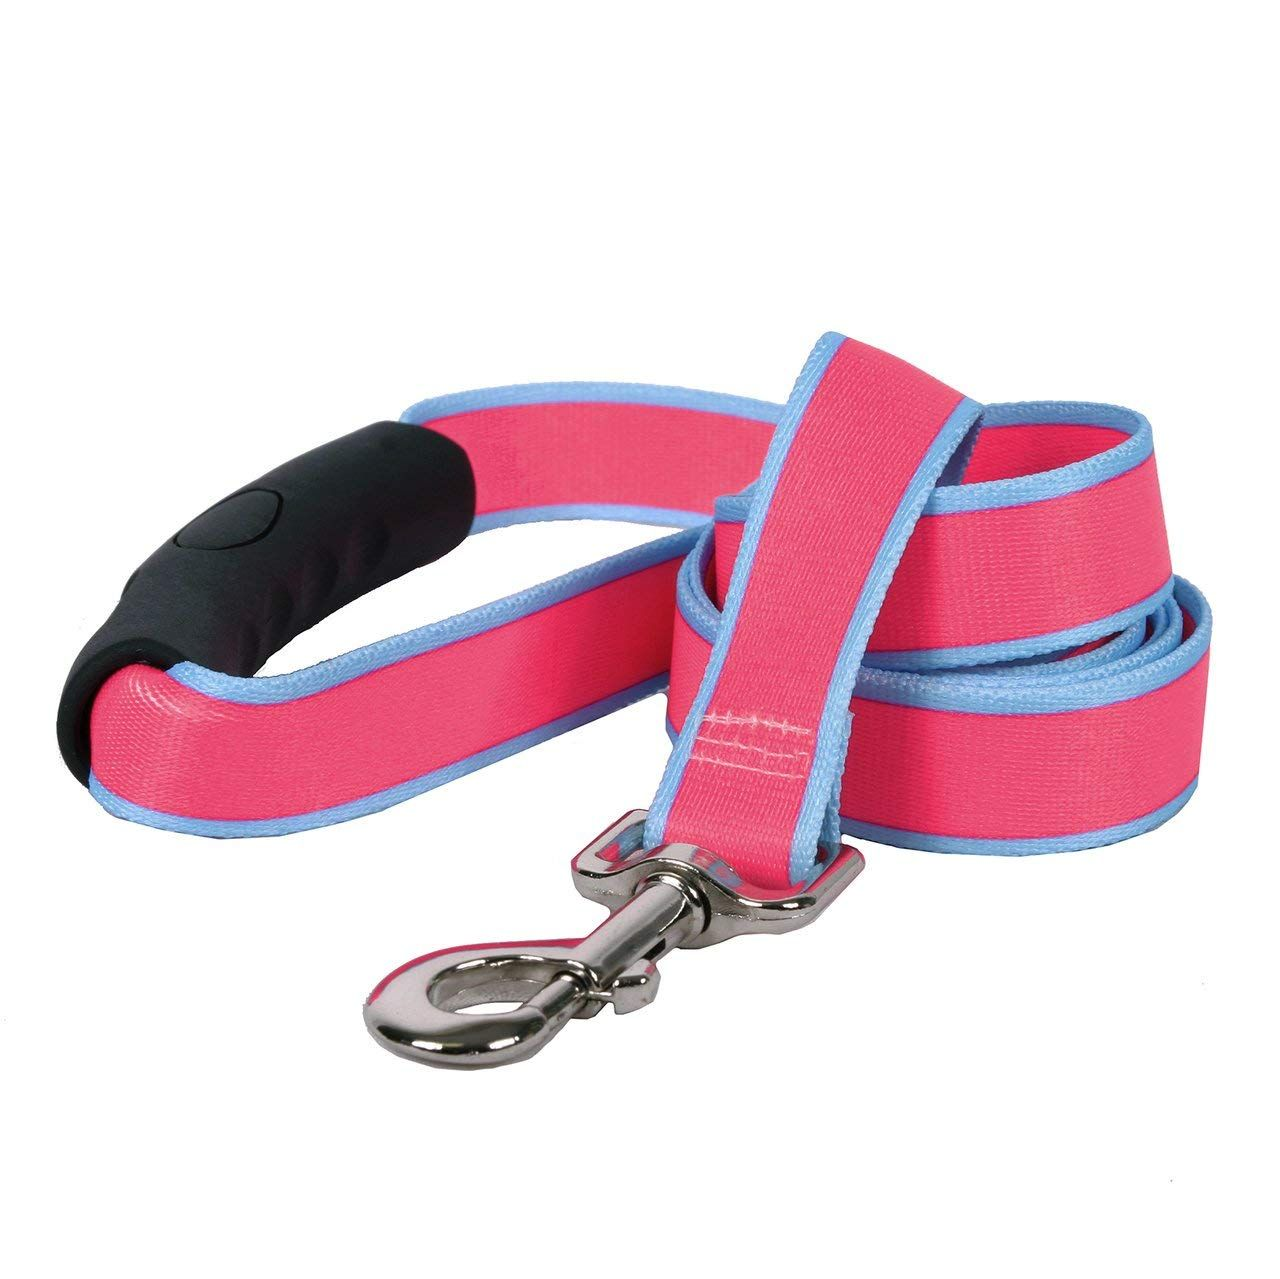 PetsCaptain Double Head 6-Way Multi-Functional 0.5 Diameter Heavy Duty Rope Dog Leash 3 Different Length Leash 42, 54, or 72, Quick Tie-Off, Hands-Free, or Double Dog Leash